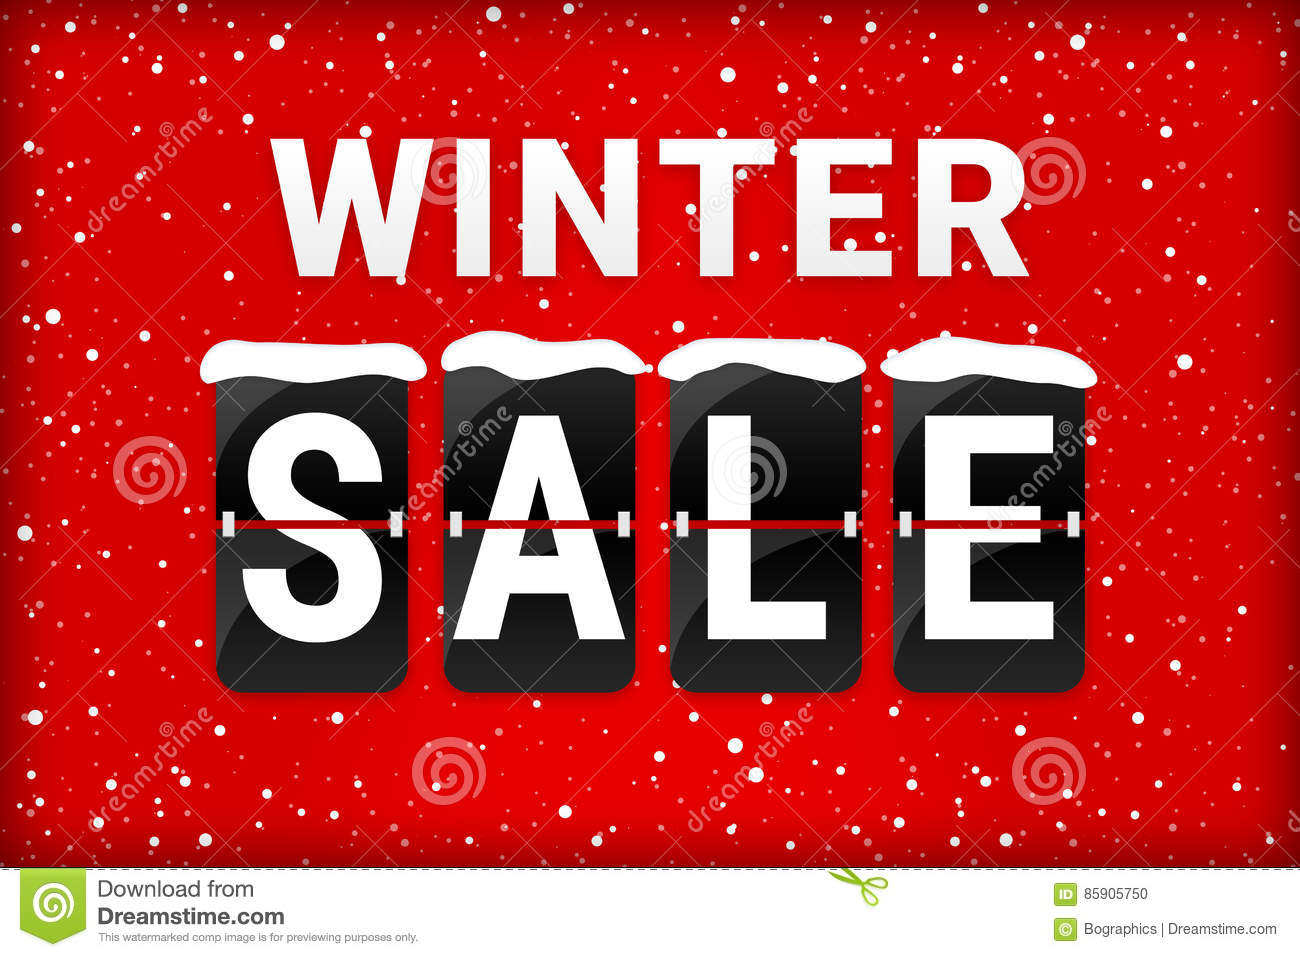 Winter sale analog flipping text red